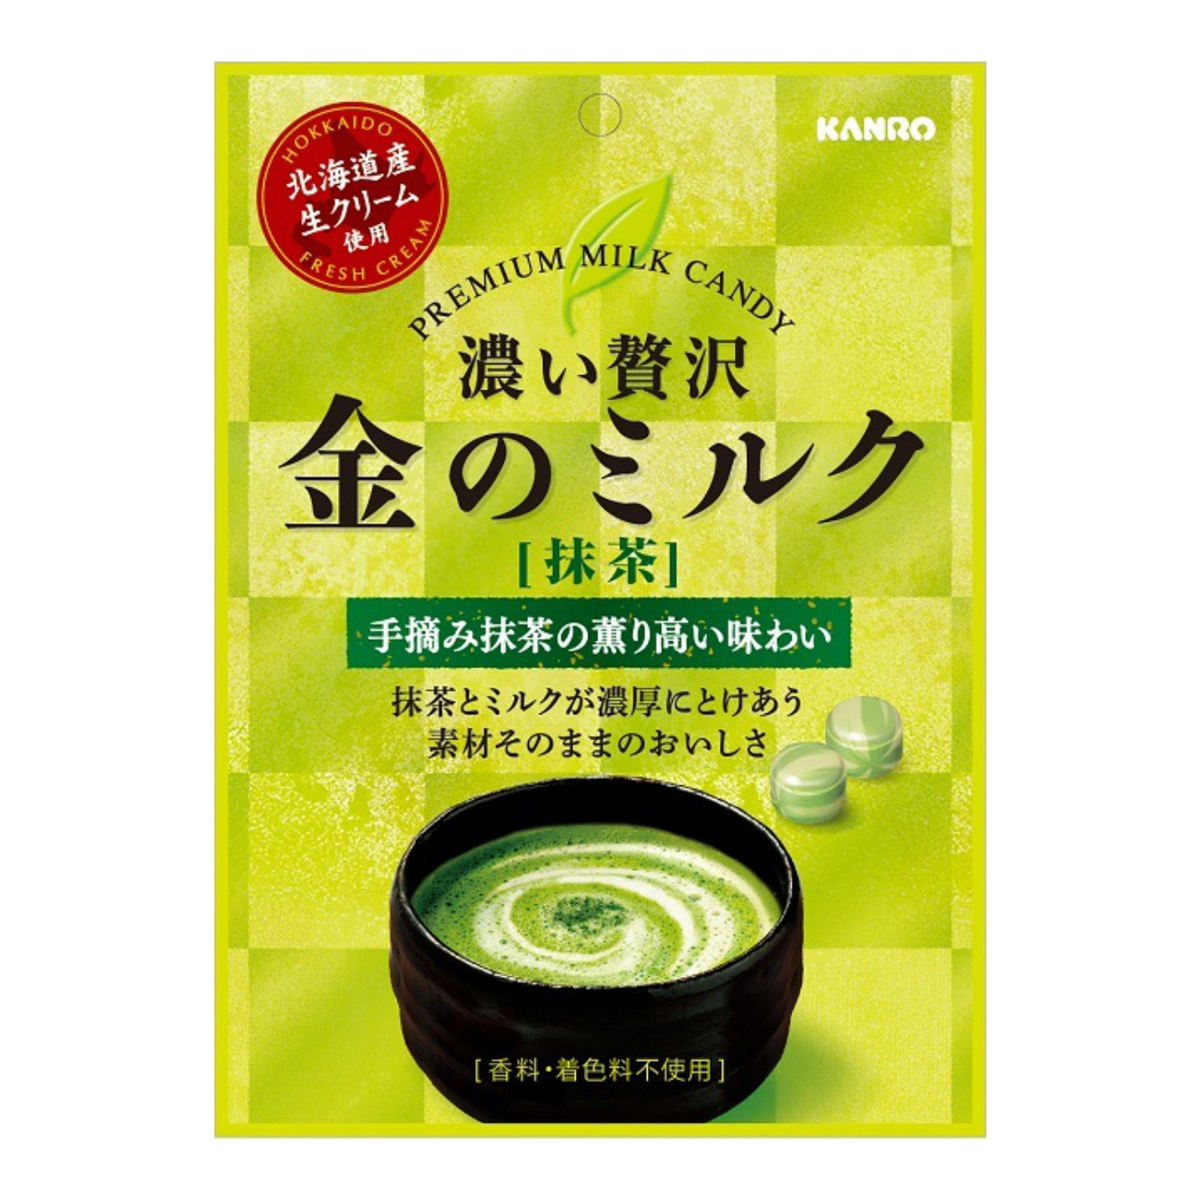 Kanro gold milk Candy Green tea 70 g x 48 piece set (food, sweets, candy, powdered green tea) (4901351014882)